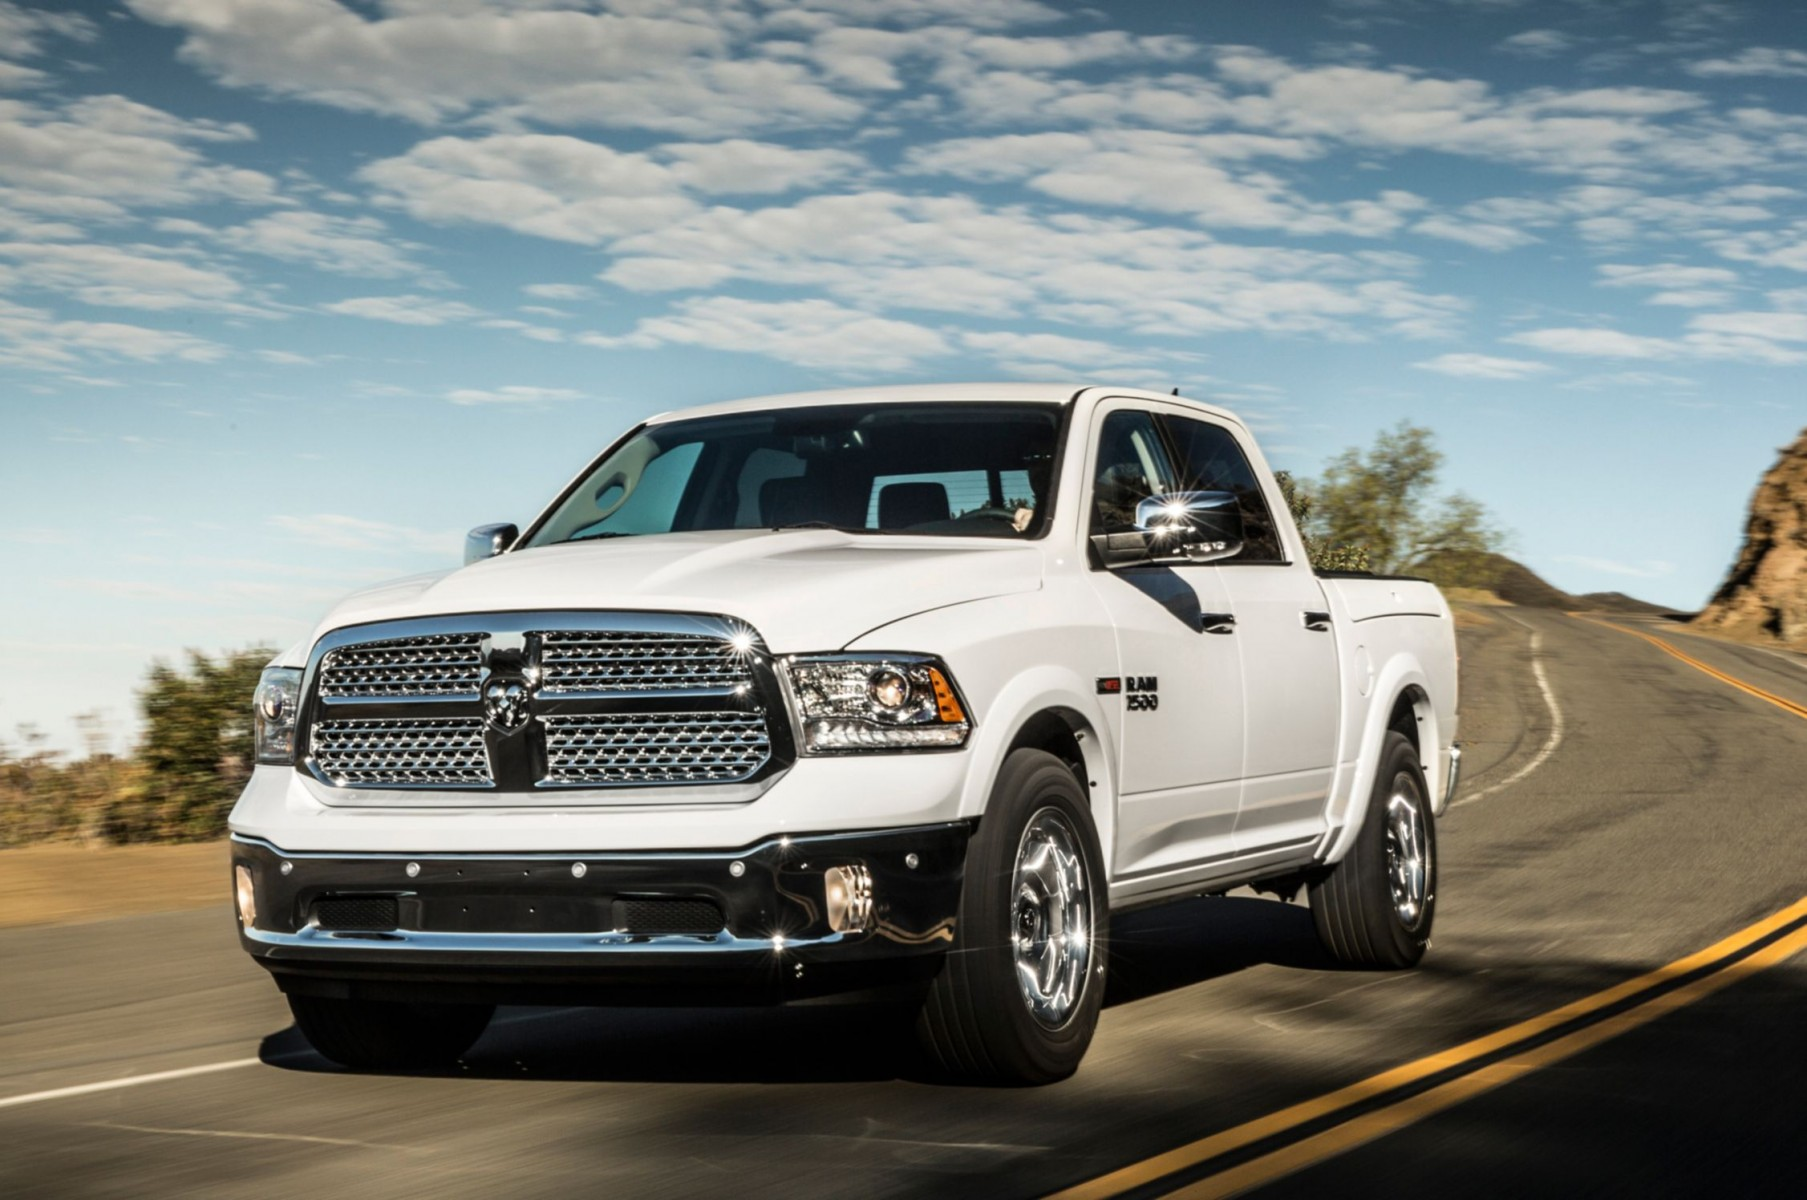 White Dodge Pickup Trucks 2014 Wallpaper